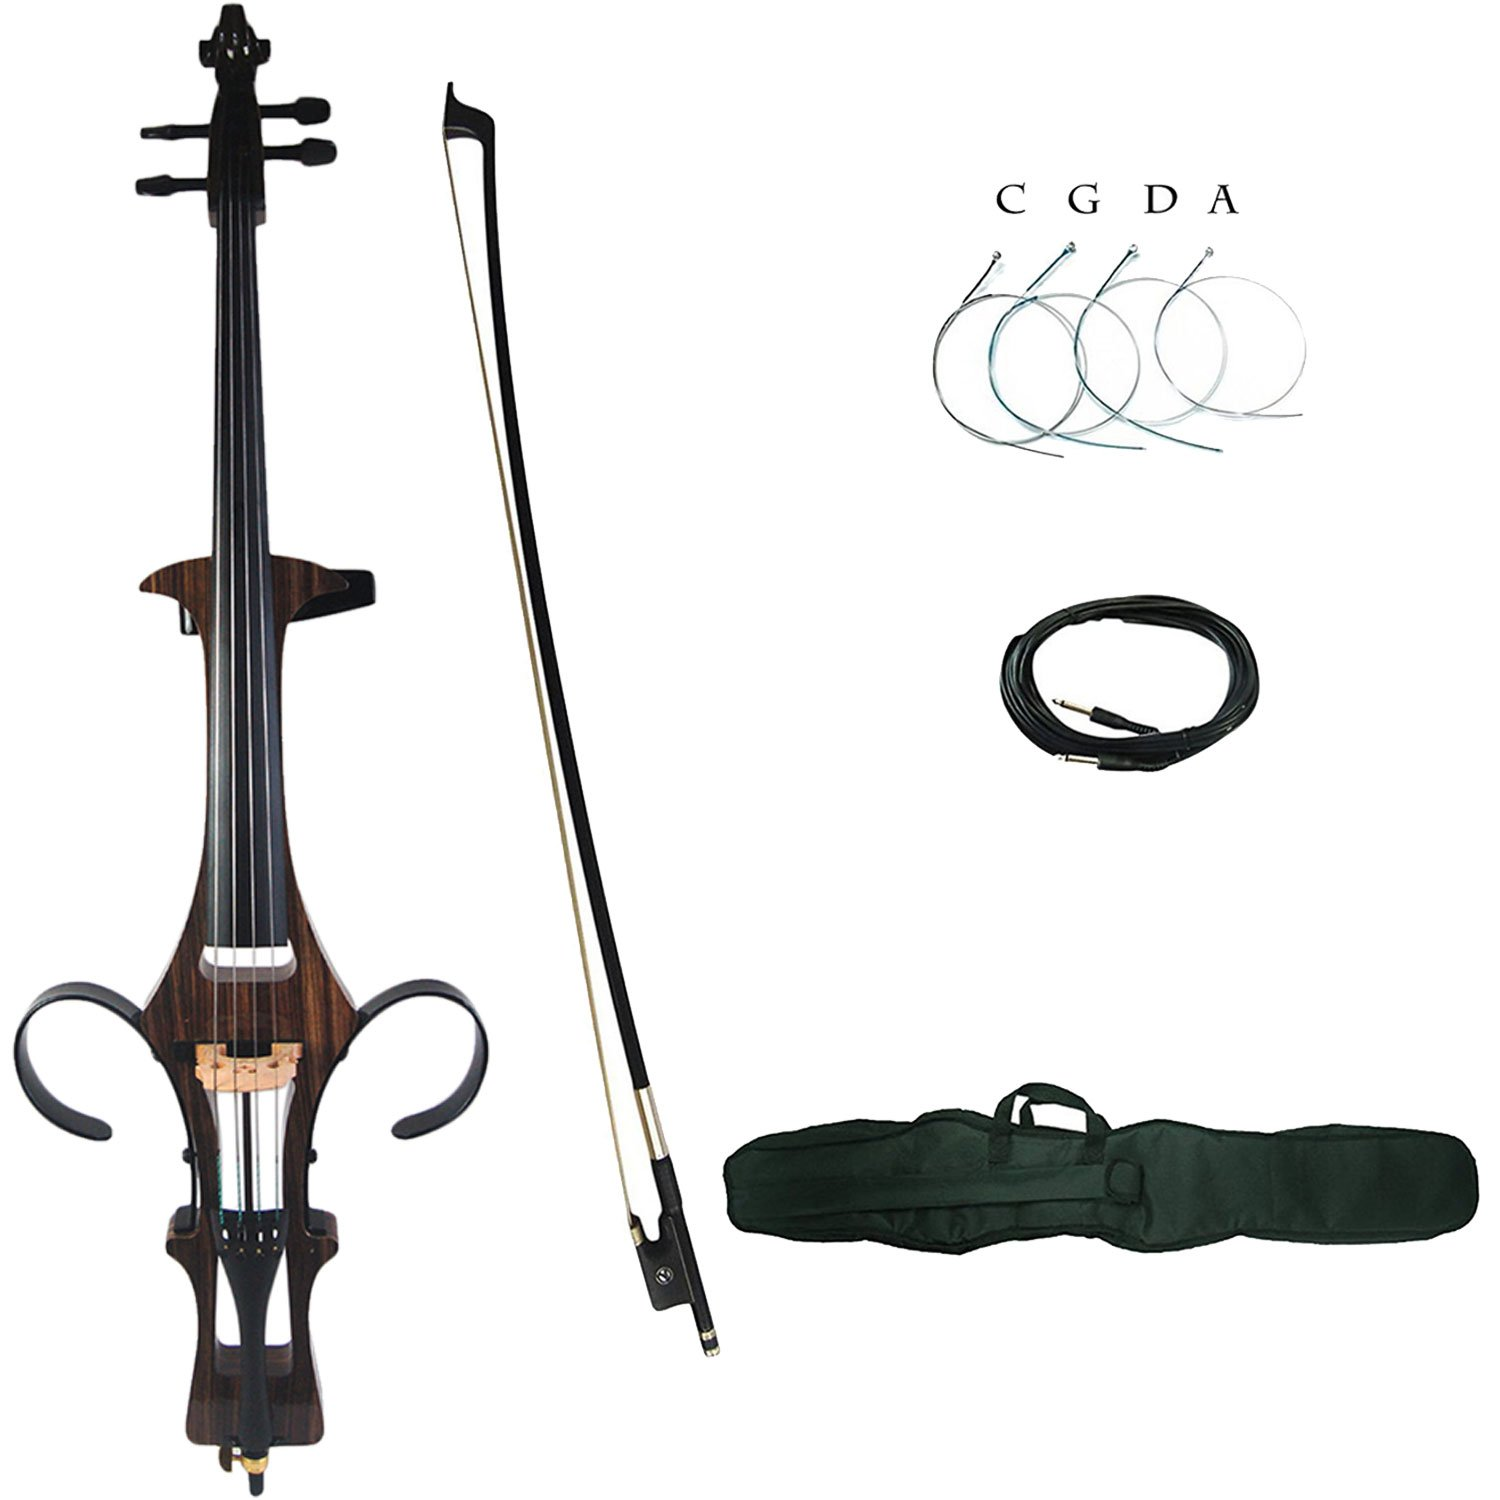 Aliyes Professional Handmade Solid Wood Electric Cello 4/4 Full Size Silent Electric Cello With bow, Case,Bridge Strings-1807 by Aliyes